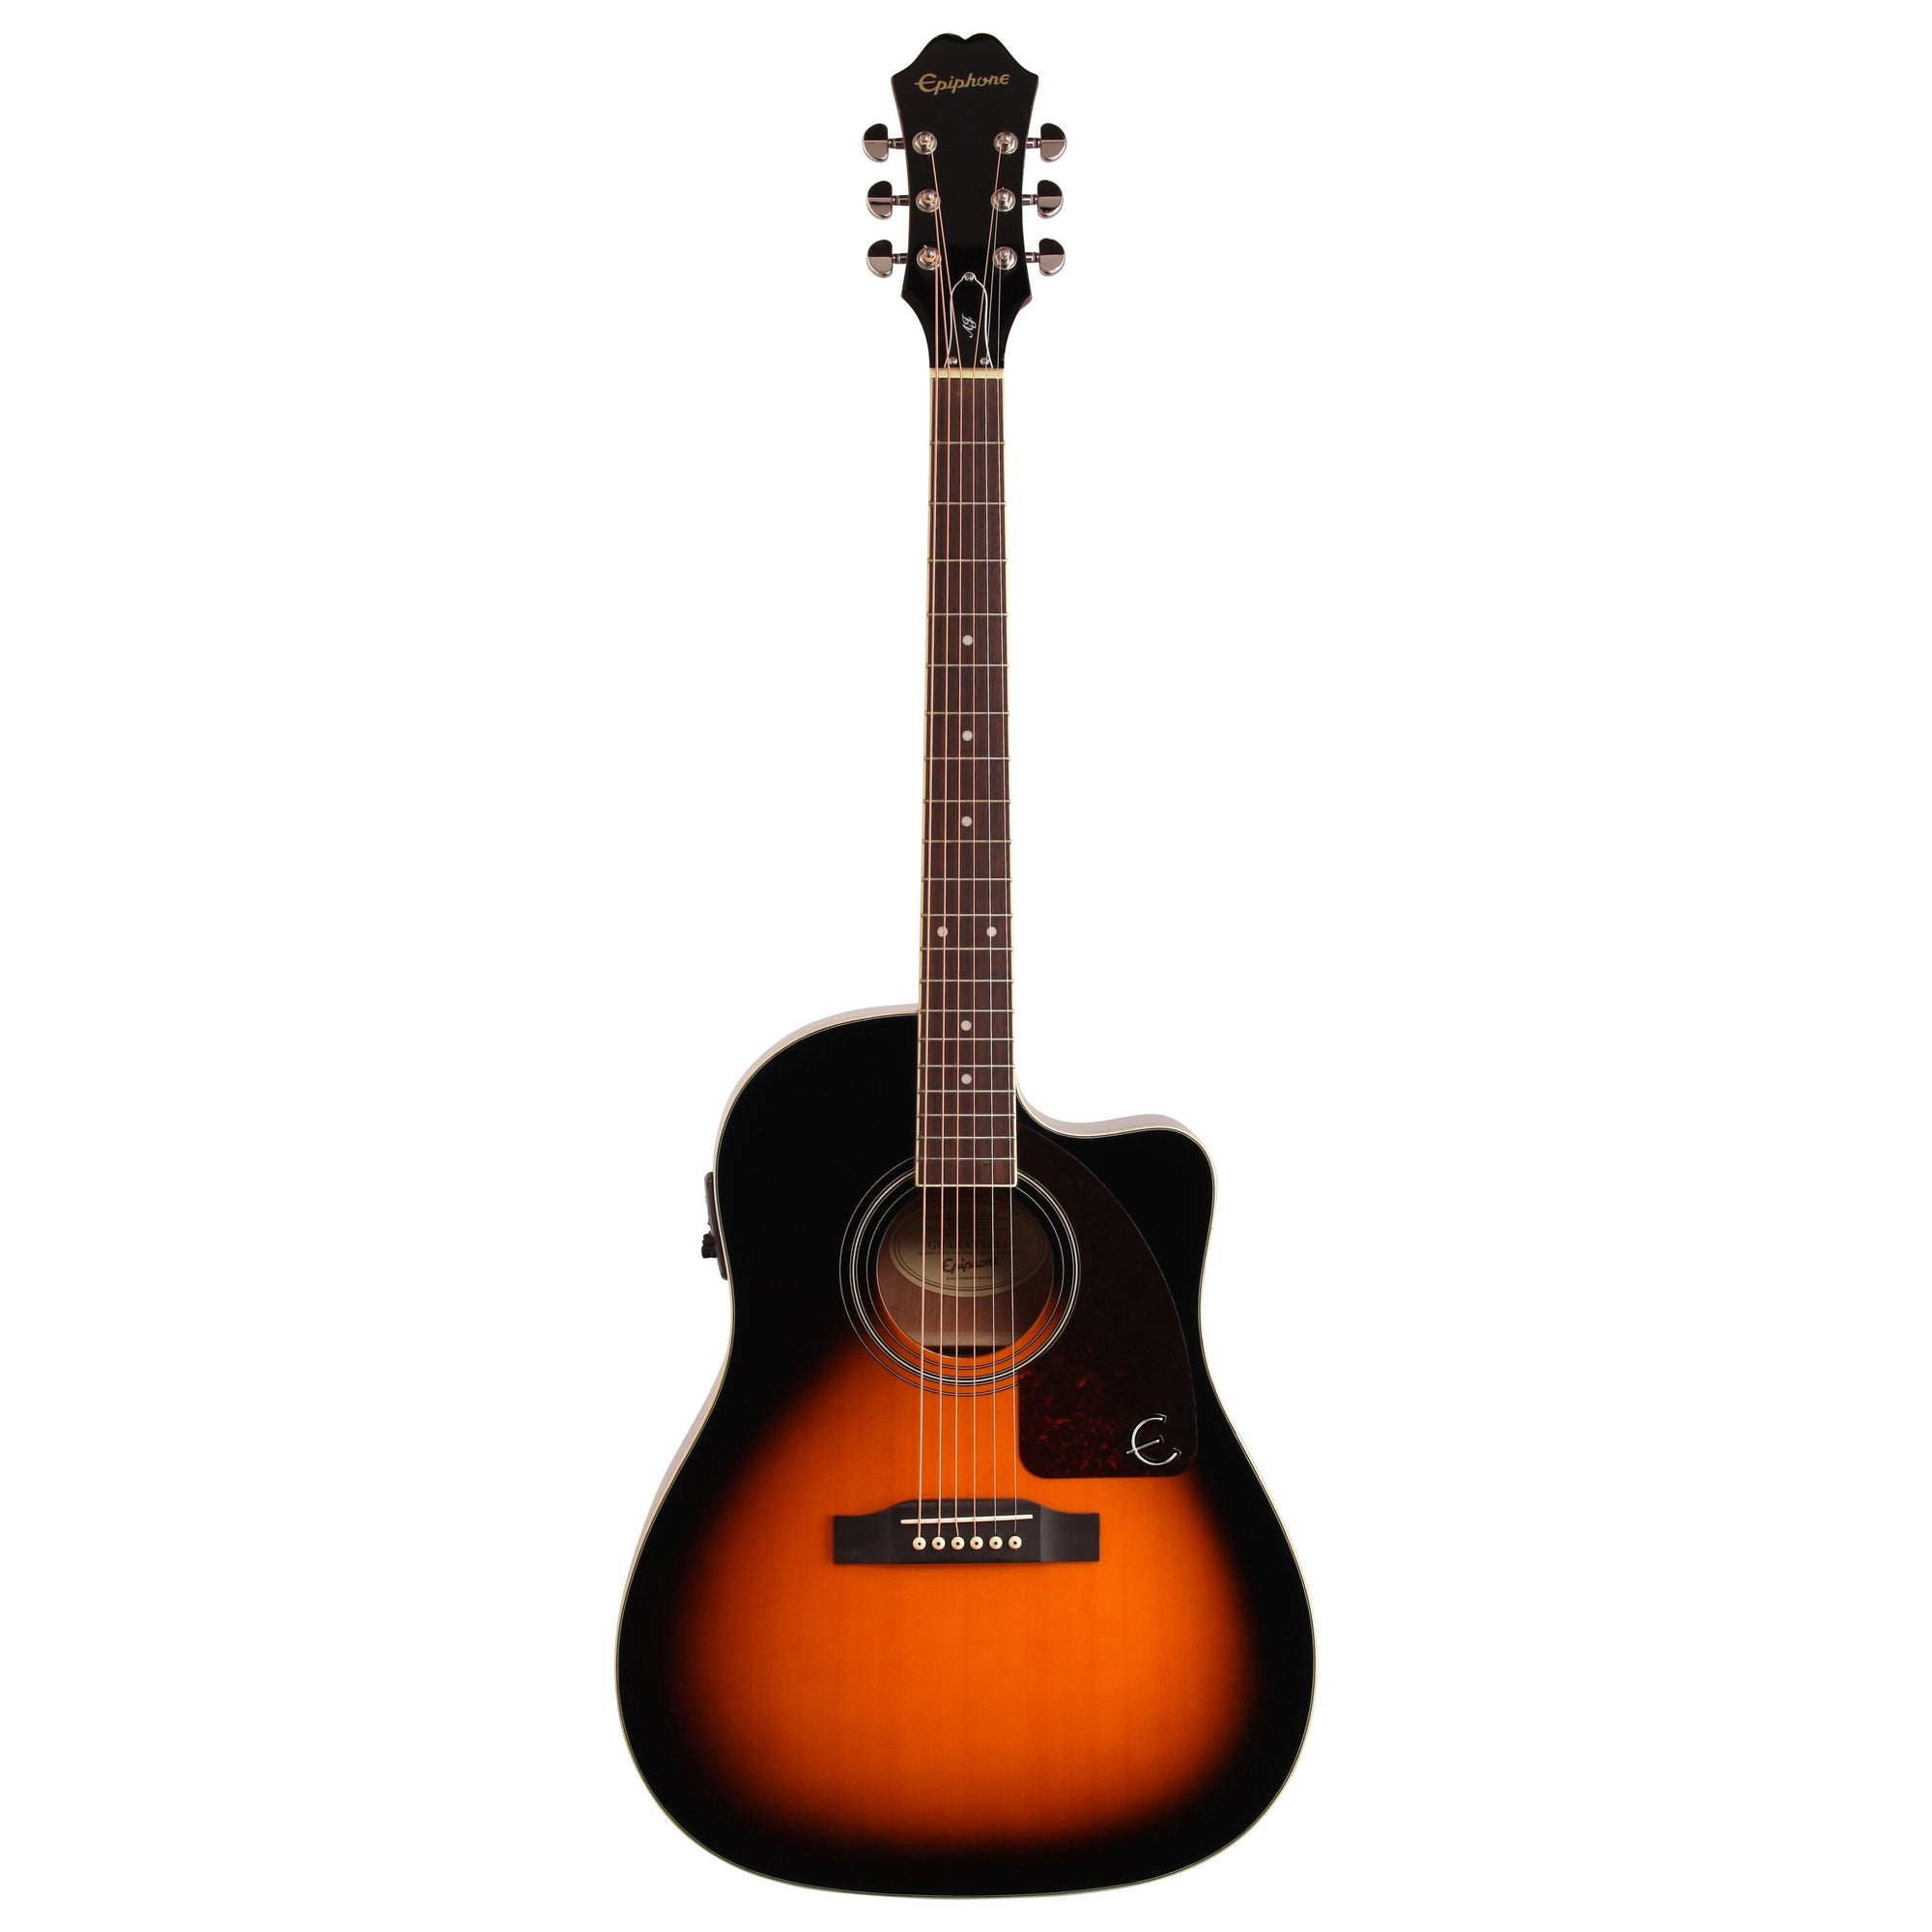 Epiphone AJ-220SCE Acoustic-Electric Guitar, Vintage Sunburst